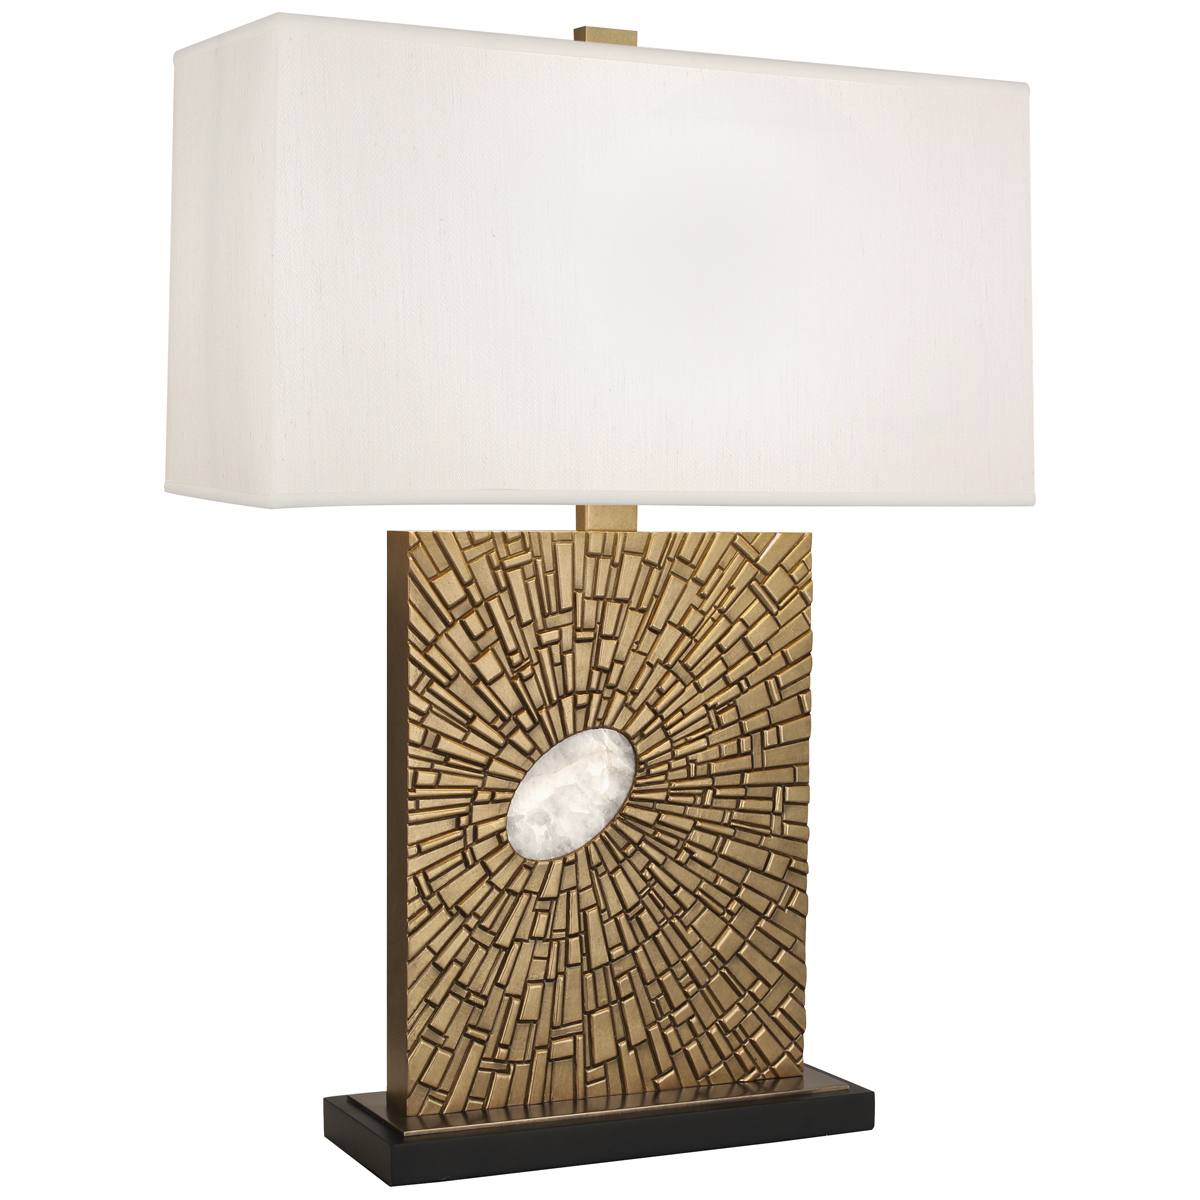 Goliath Table Lamp Style #415